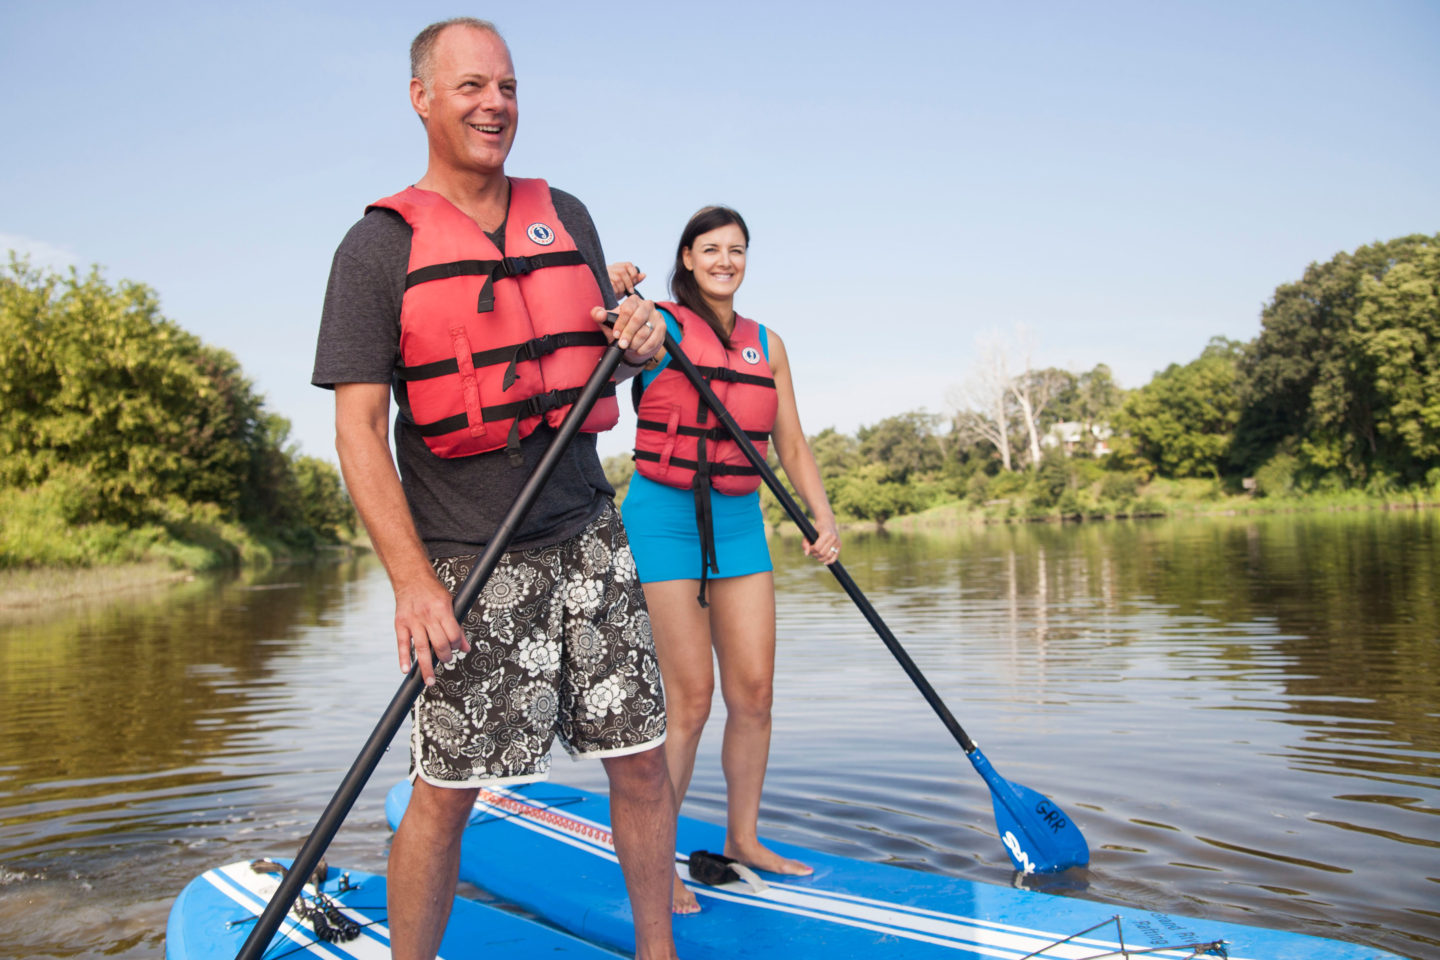 Grand River Stand Up Paddle Board (SUP) Rentals and Trips